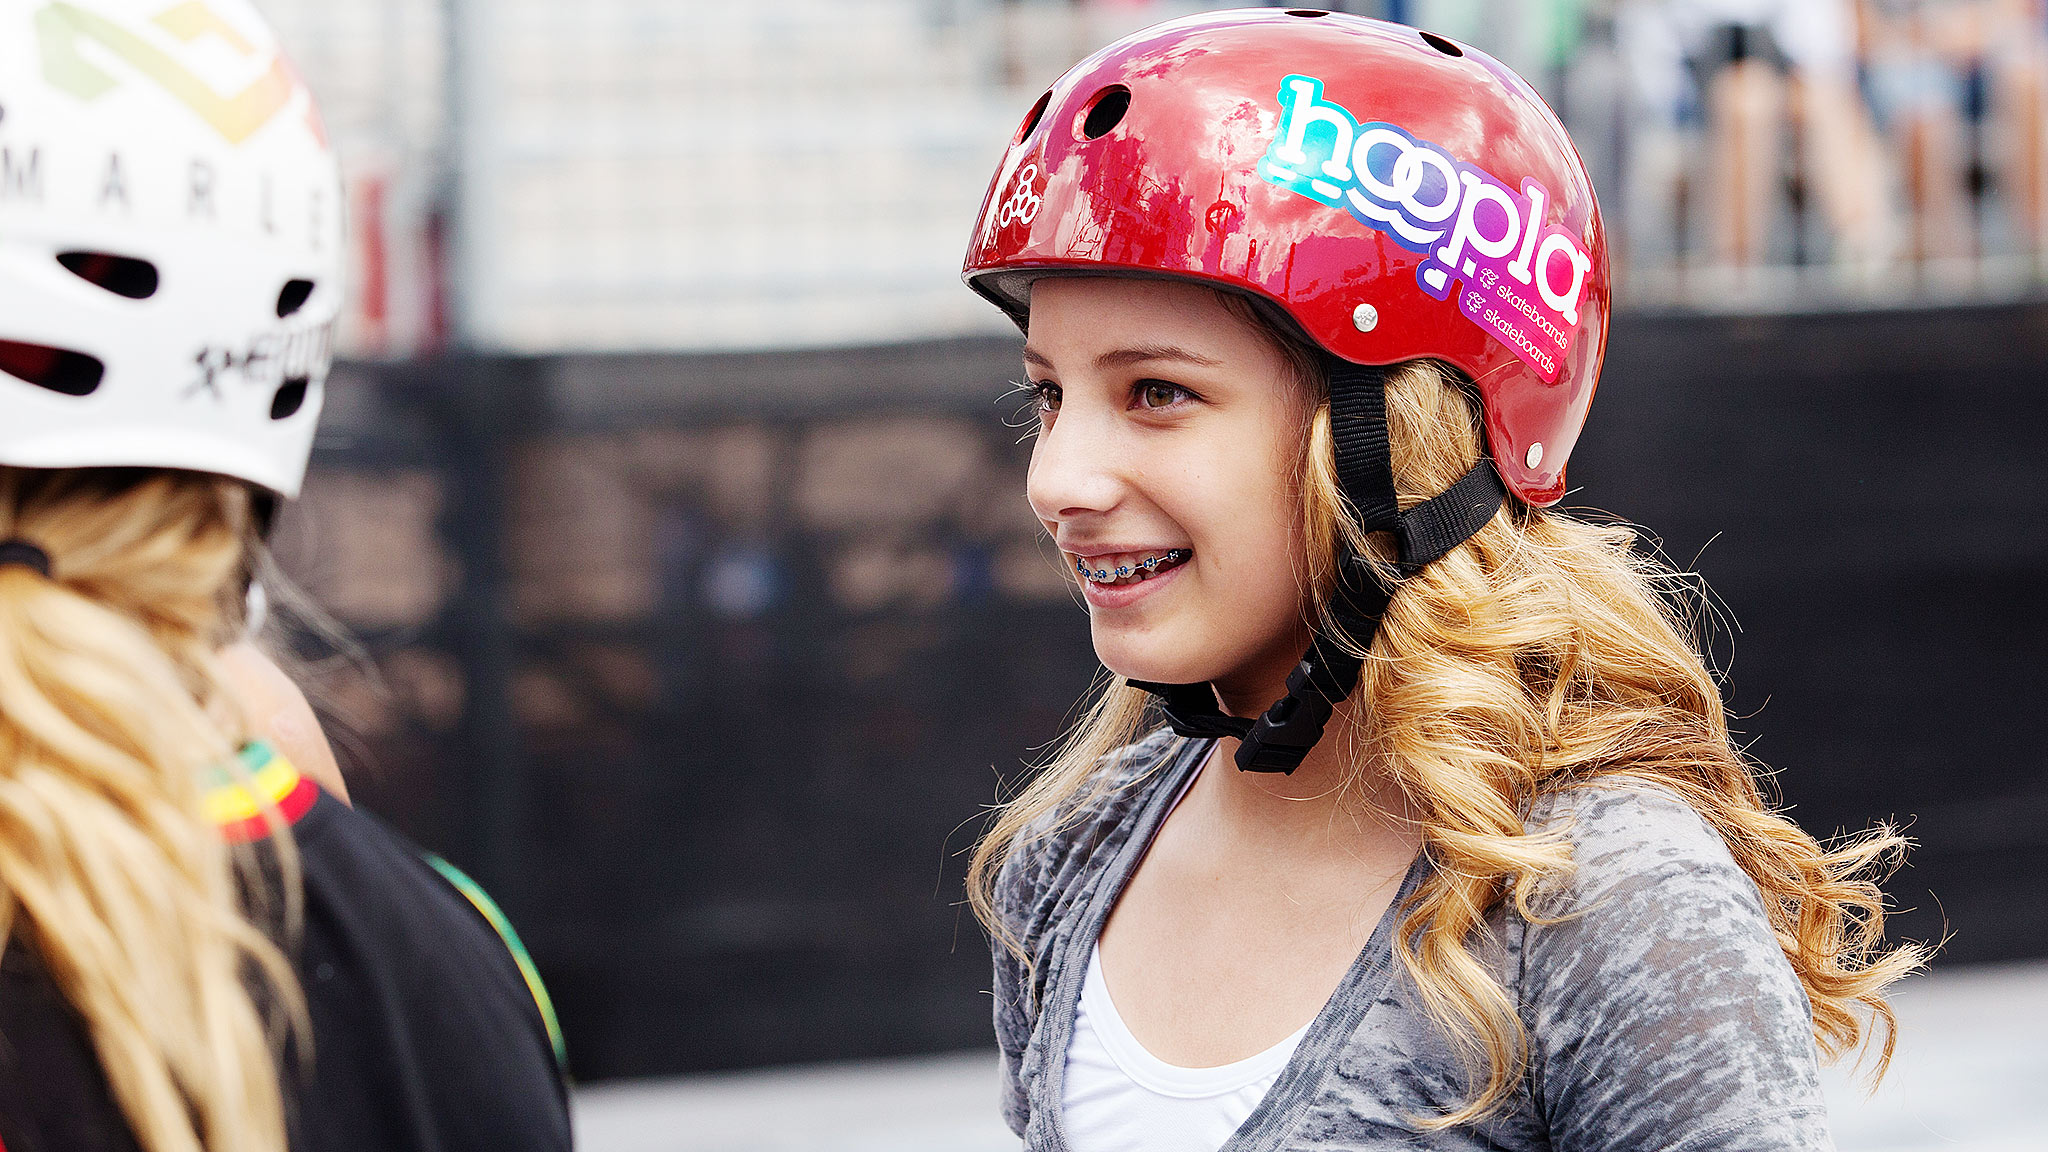 Alana Smith won silver in the debut of Women's Skateboard Park at X Games Barcelona. The 12-year-old narrowly lost out on gold to Lizzie Armanto and became the youngest medalist in X Games history.